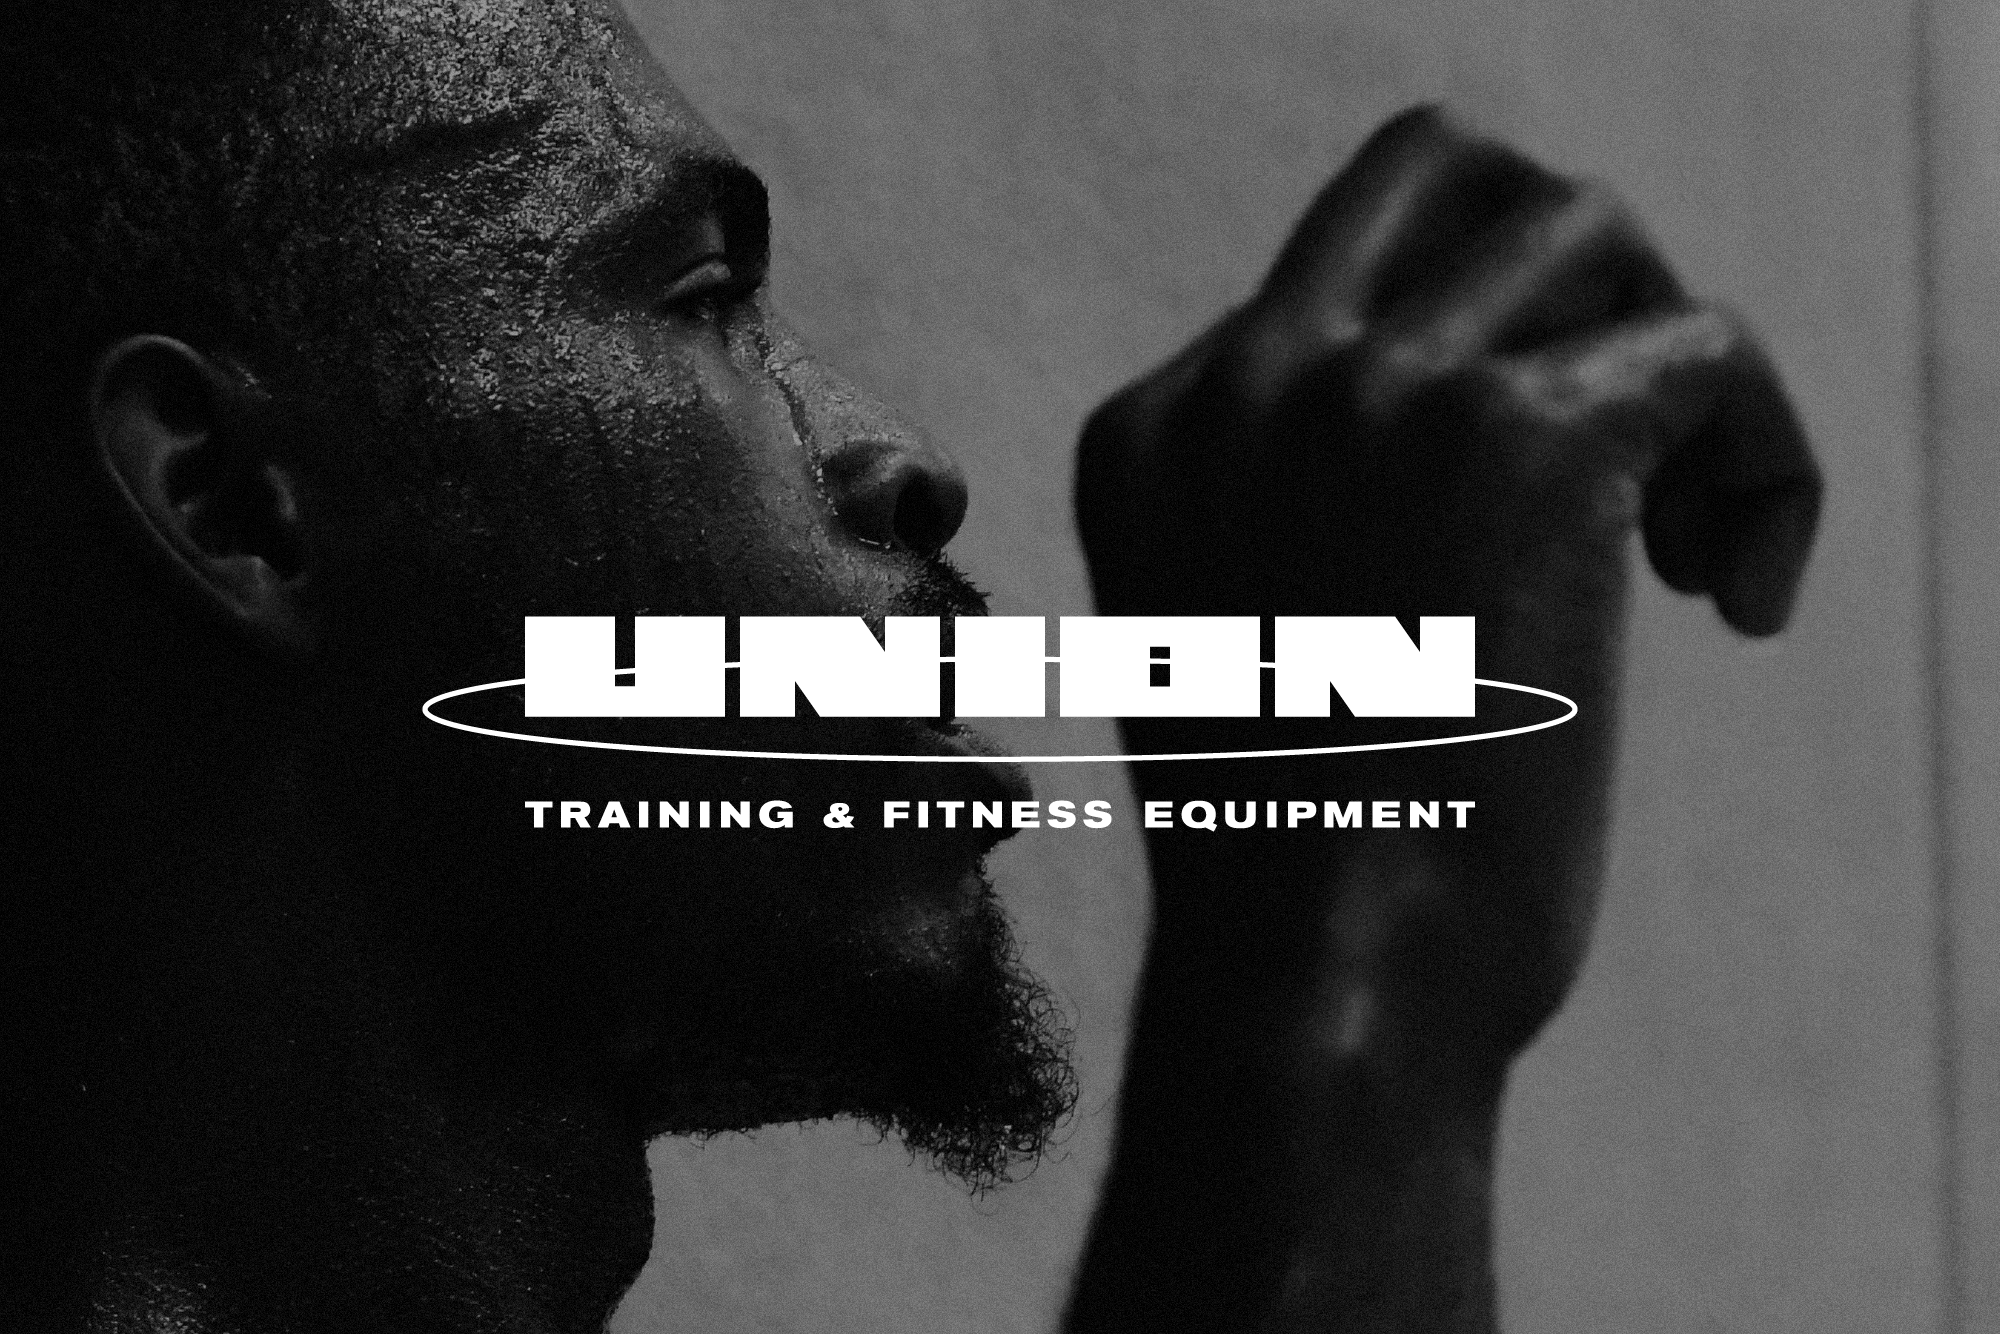 Cover image: Union